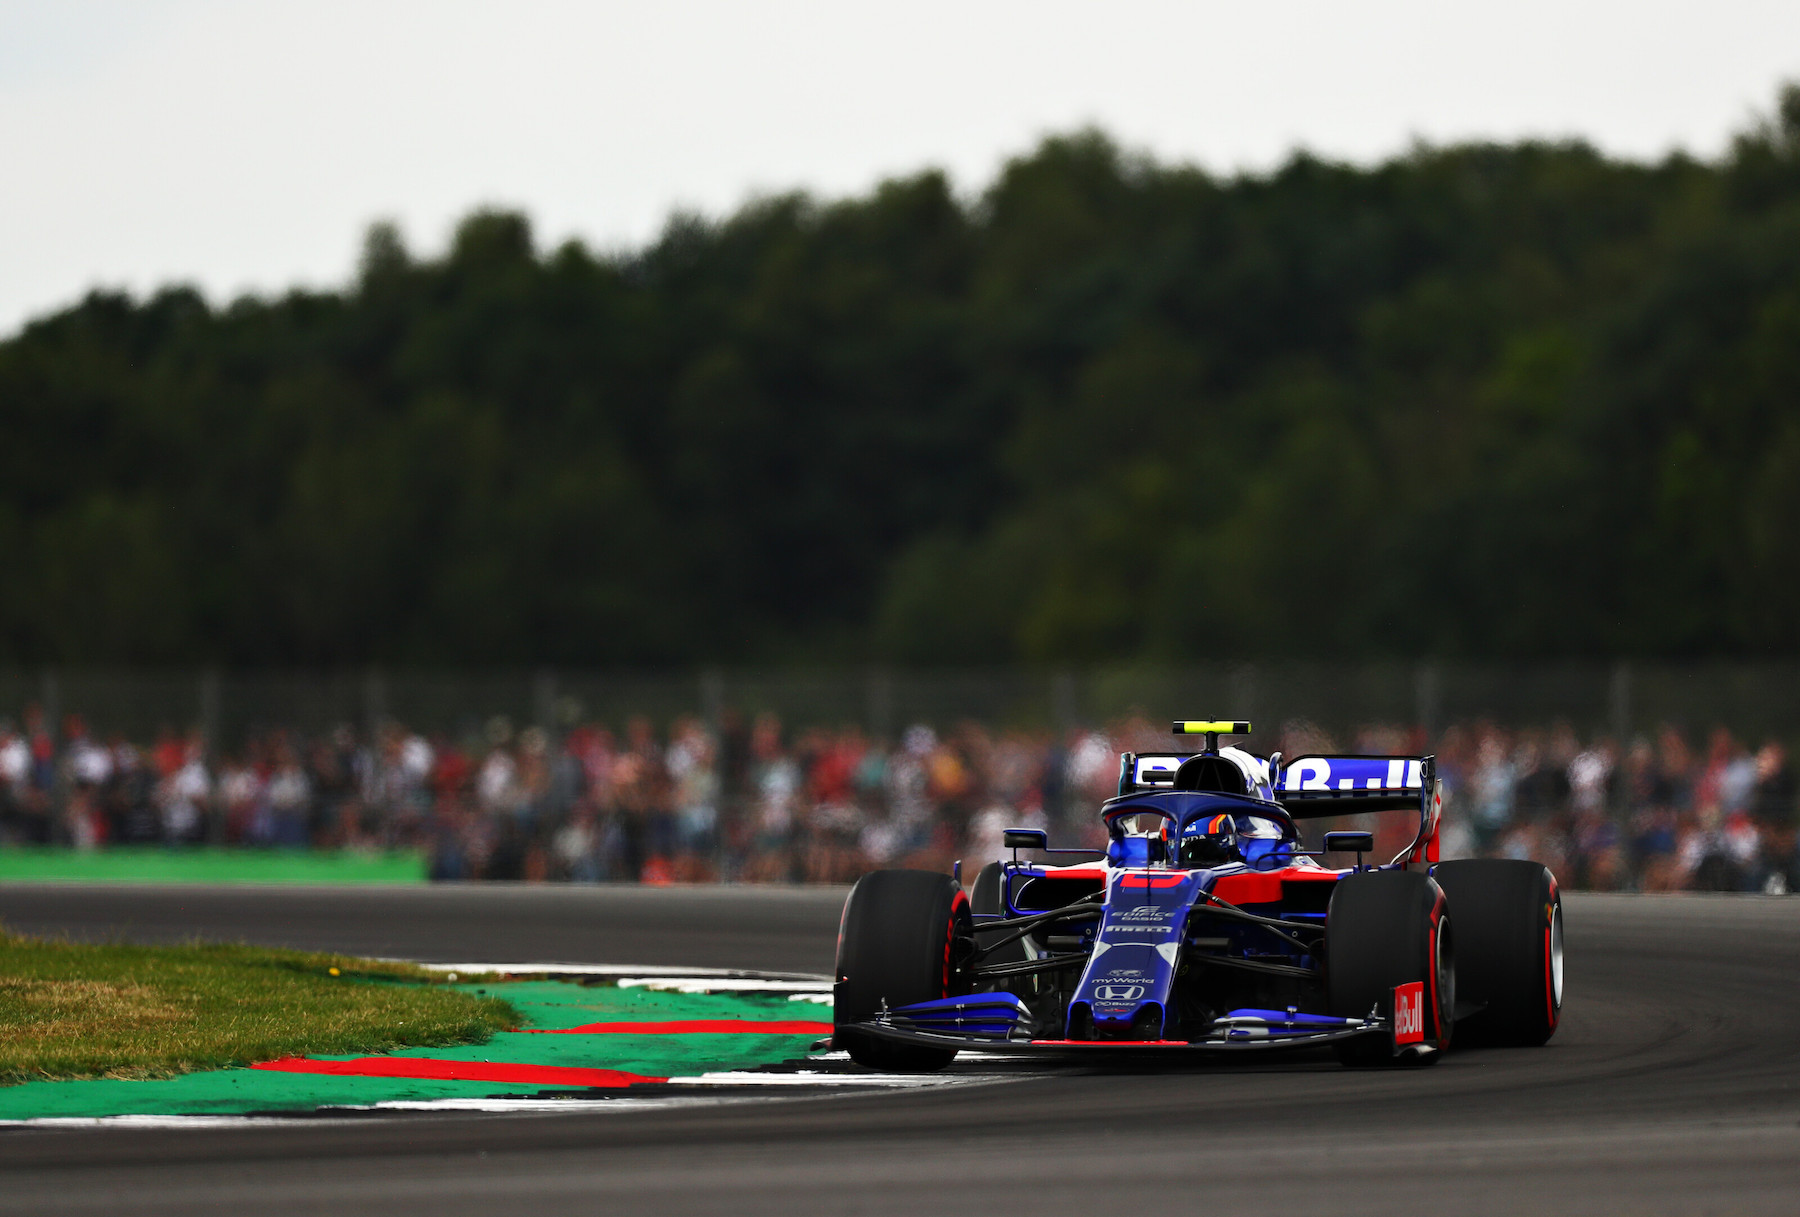 6 G 2019 British Grand Prix Sunday 3.jpg